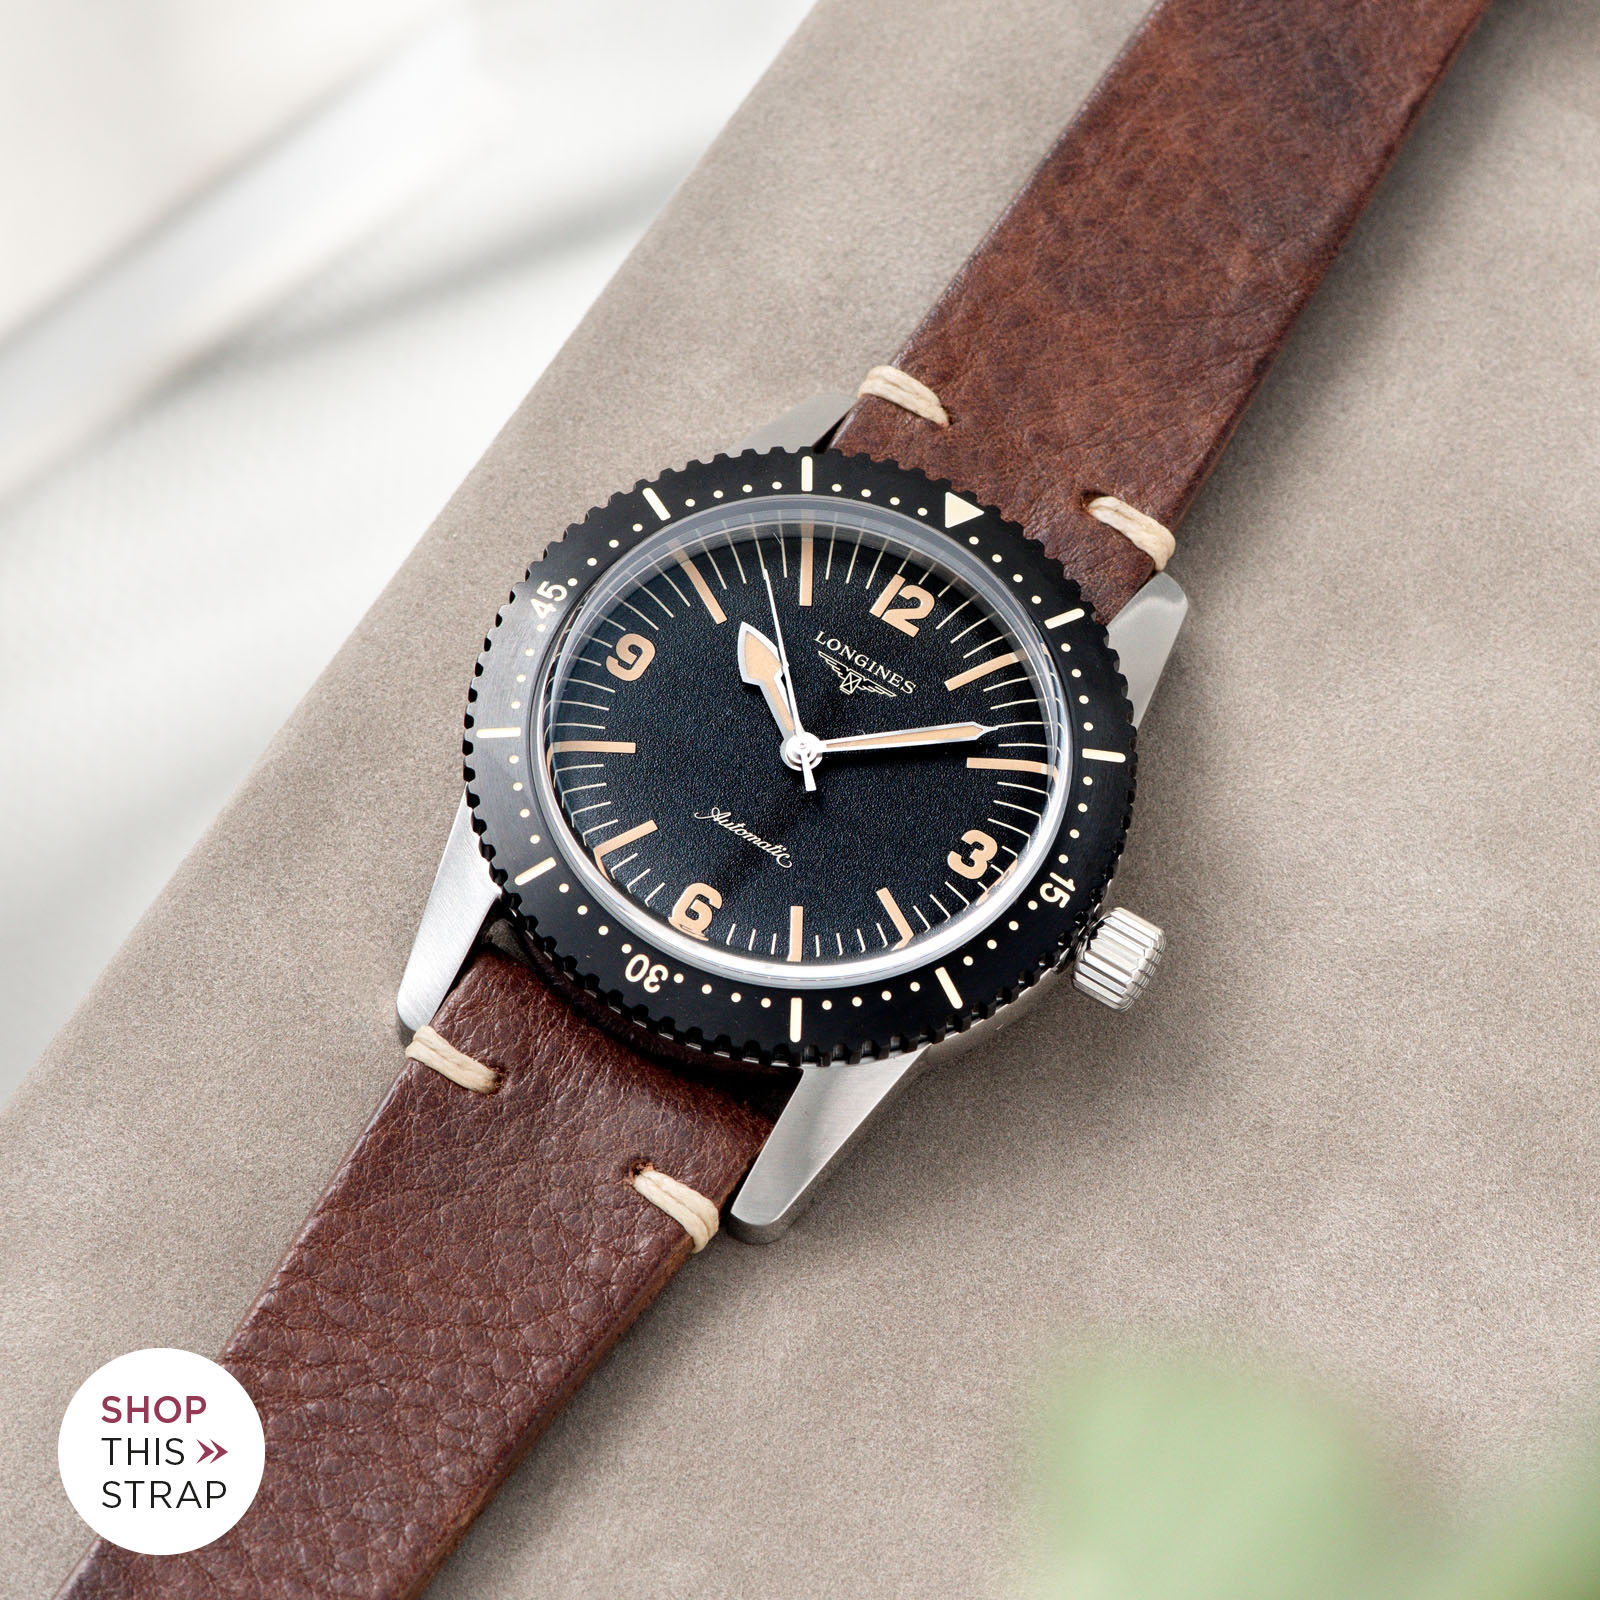 Bulang and Sons_Strap Guide_Longines Skin Diver_Lumberjack Brown Leather Watch Strap